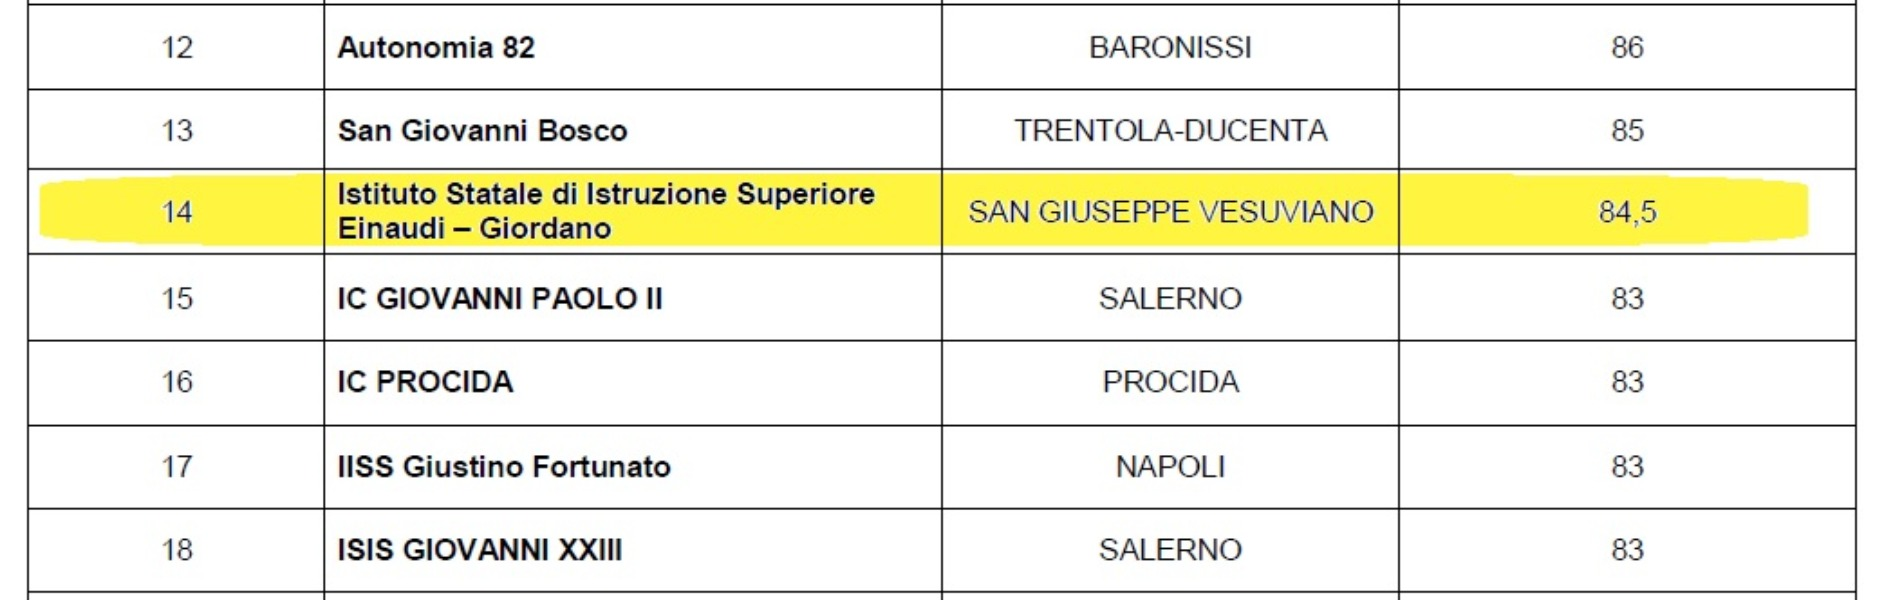 TRA I PRIMI POSTI IN CLASSIFICA